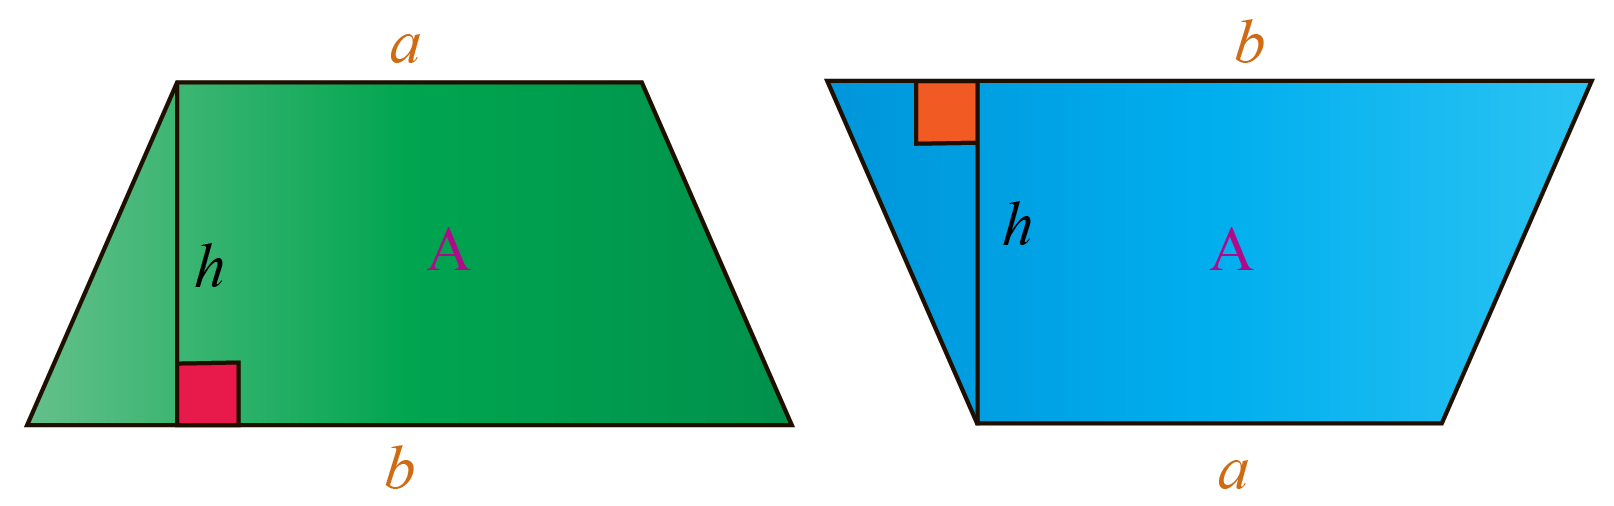 Proof of formula of area of a trapezoid is explained using two figures where one is inverted.